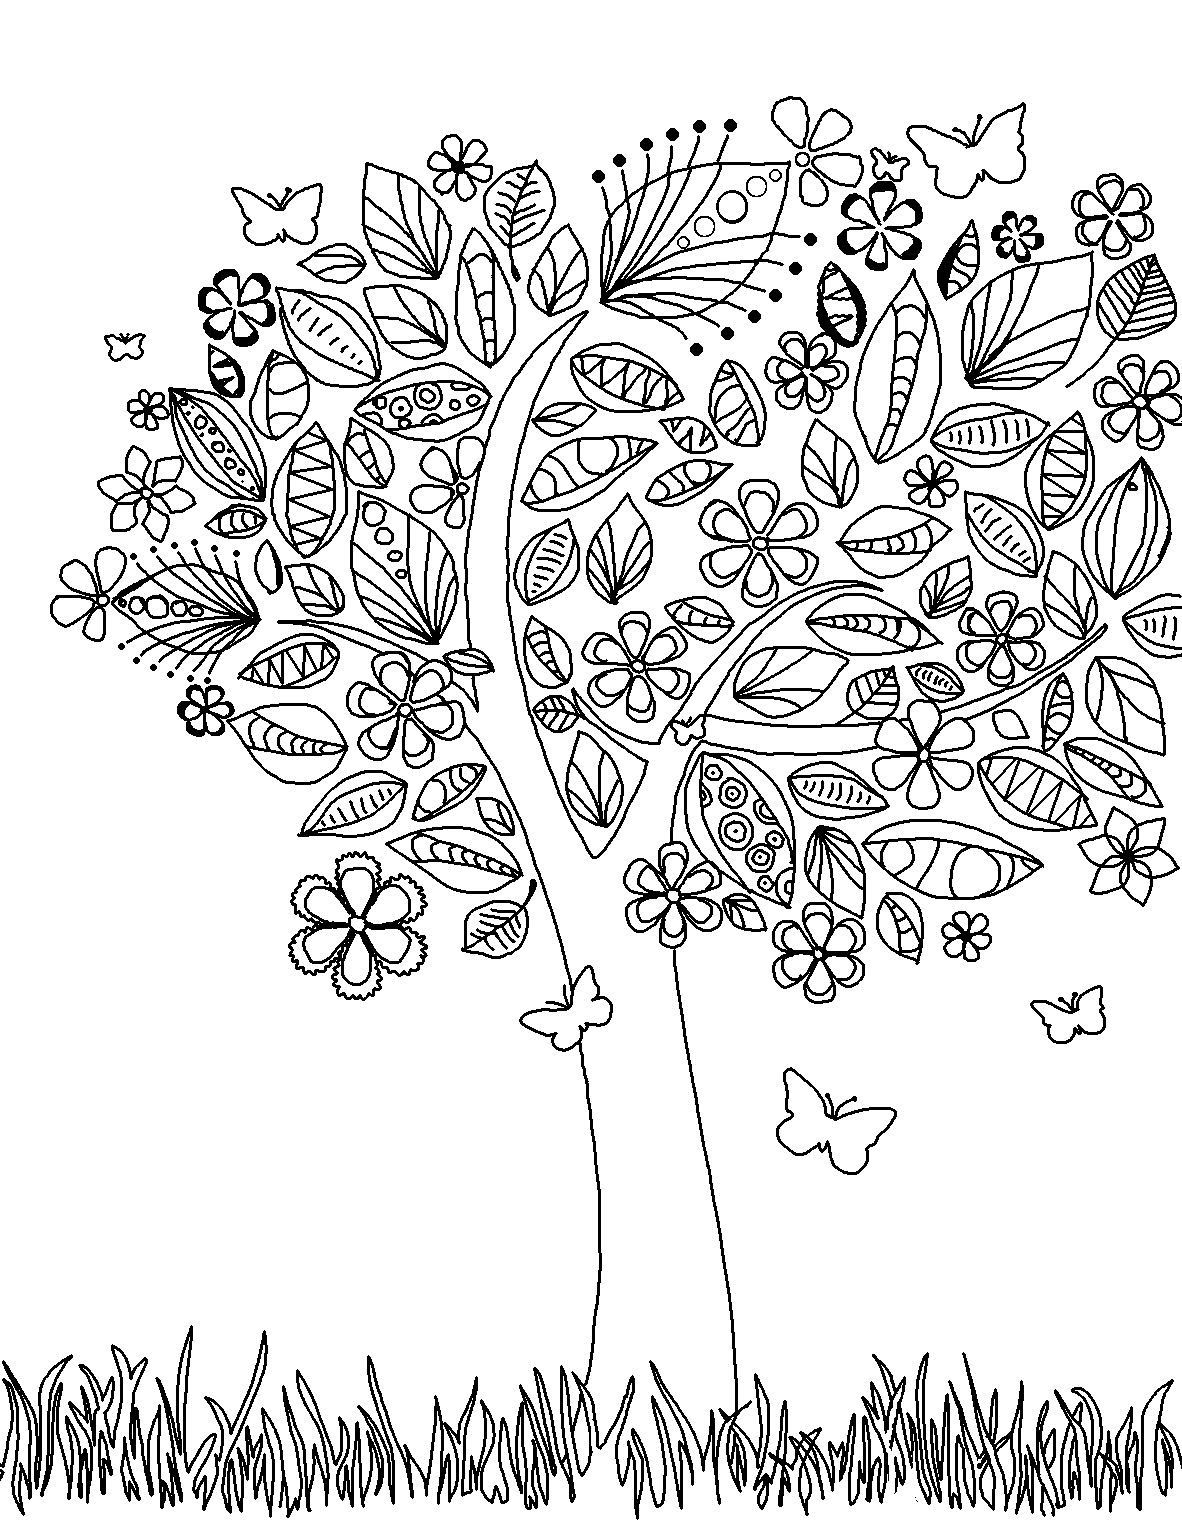 Coloring pages for restaurants -  Elephant Pages Tree Coloring Page